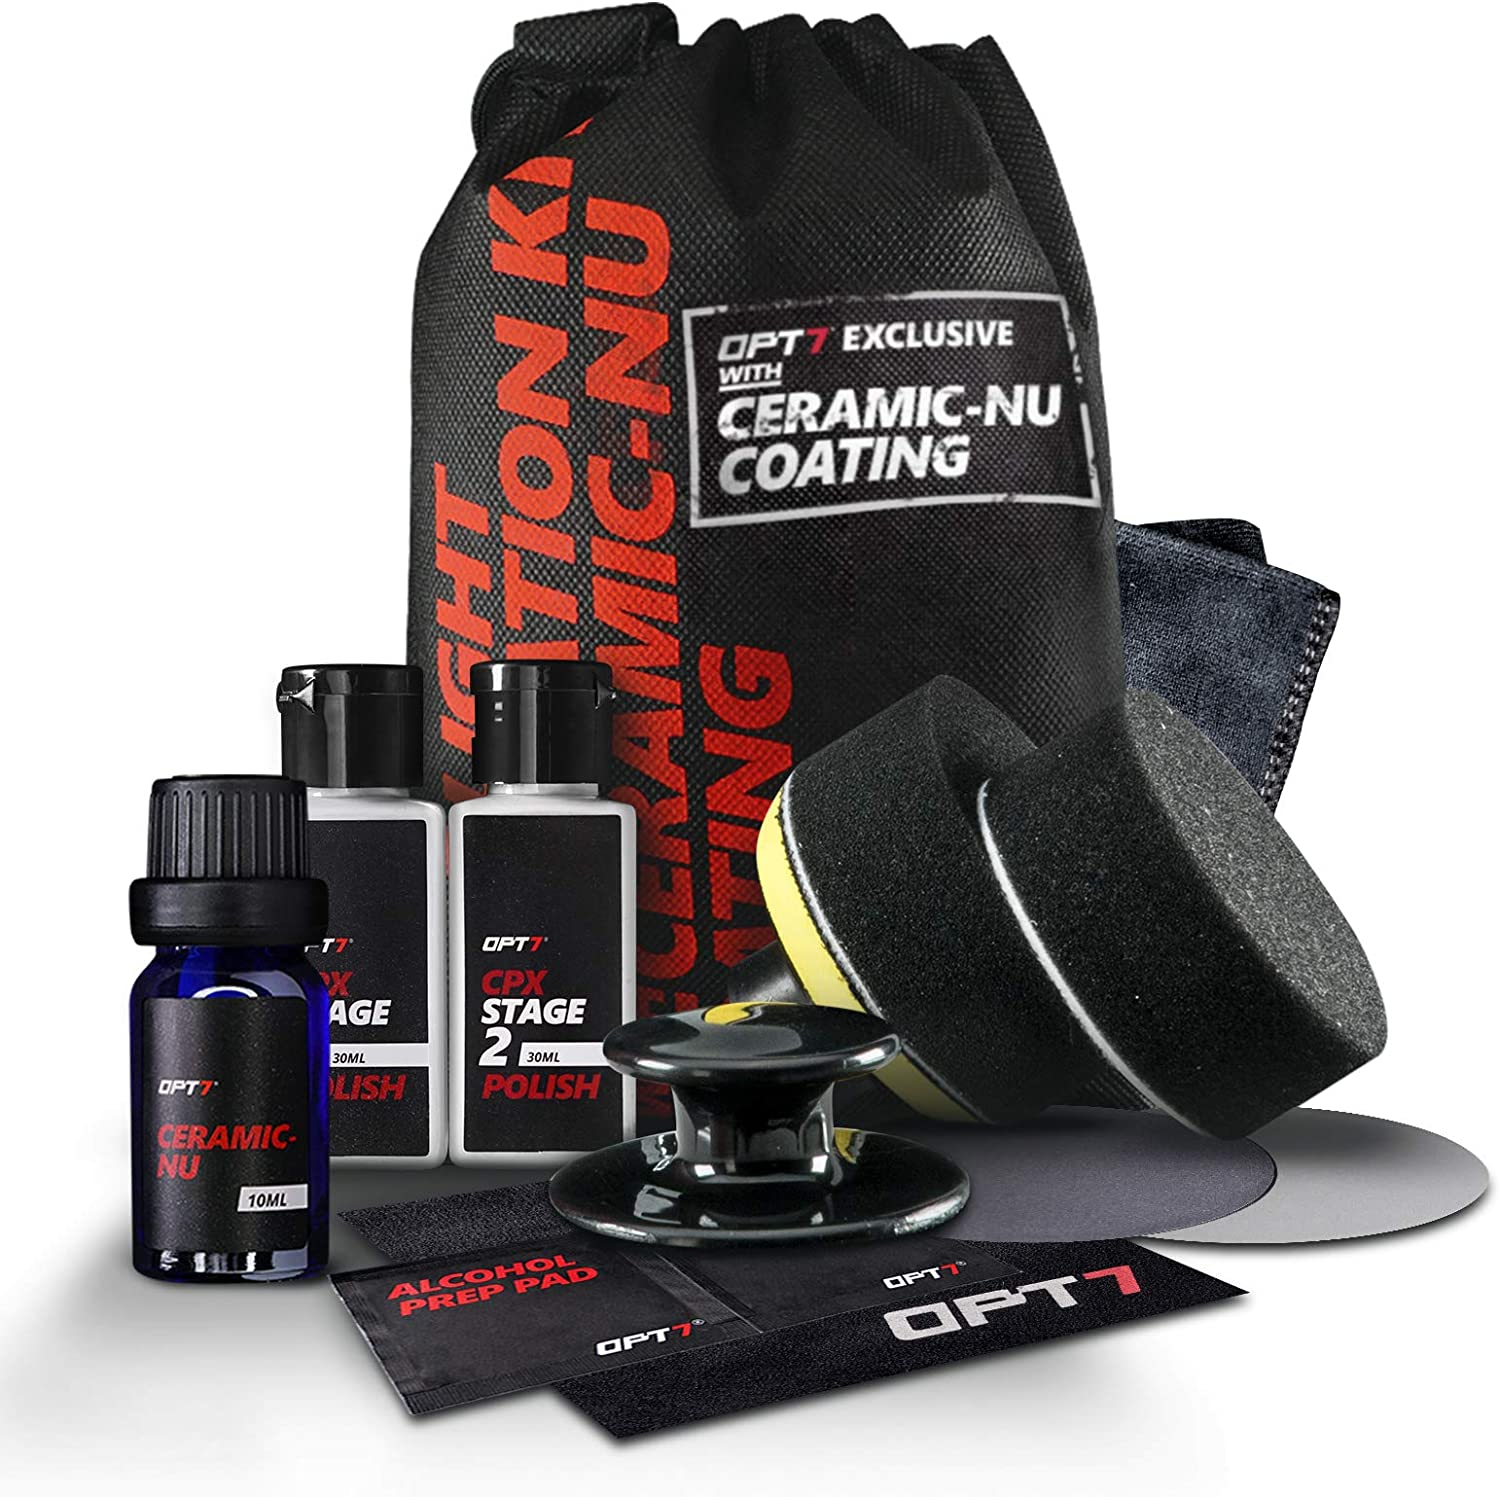 OPT7 Headlight Restoration Kit with Ceramic Nu Coating